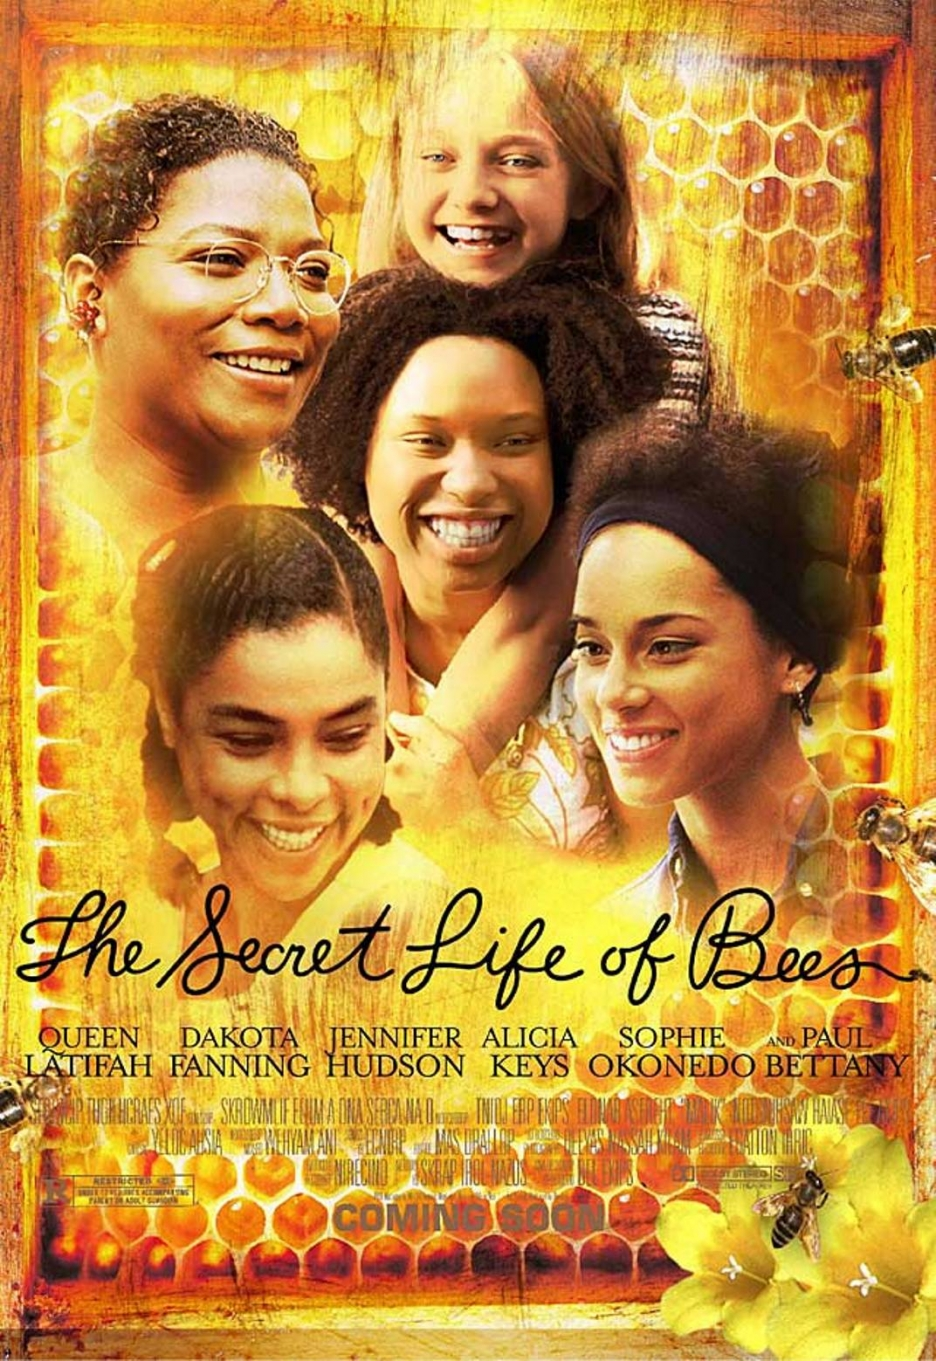 Image result for secret life of bees movie